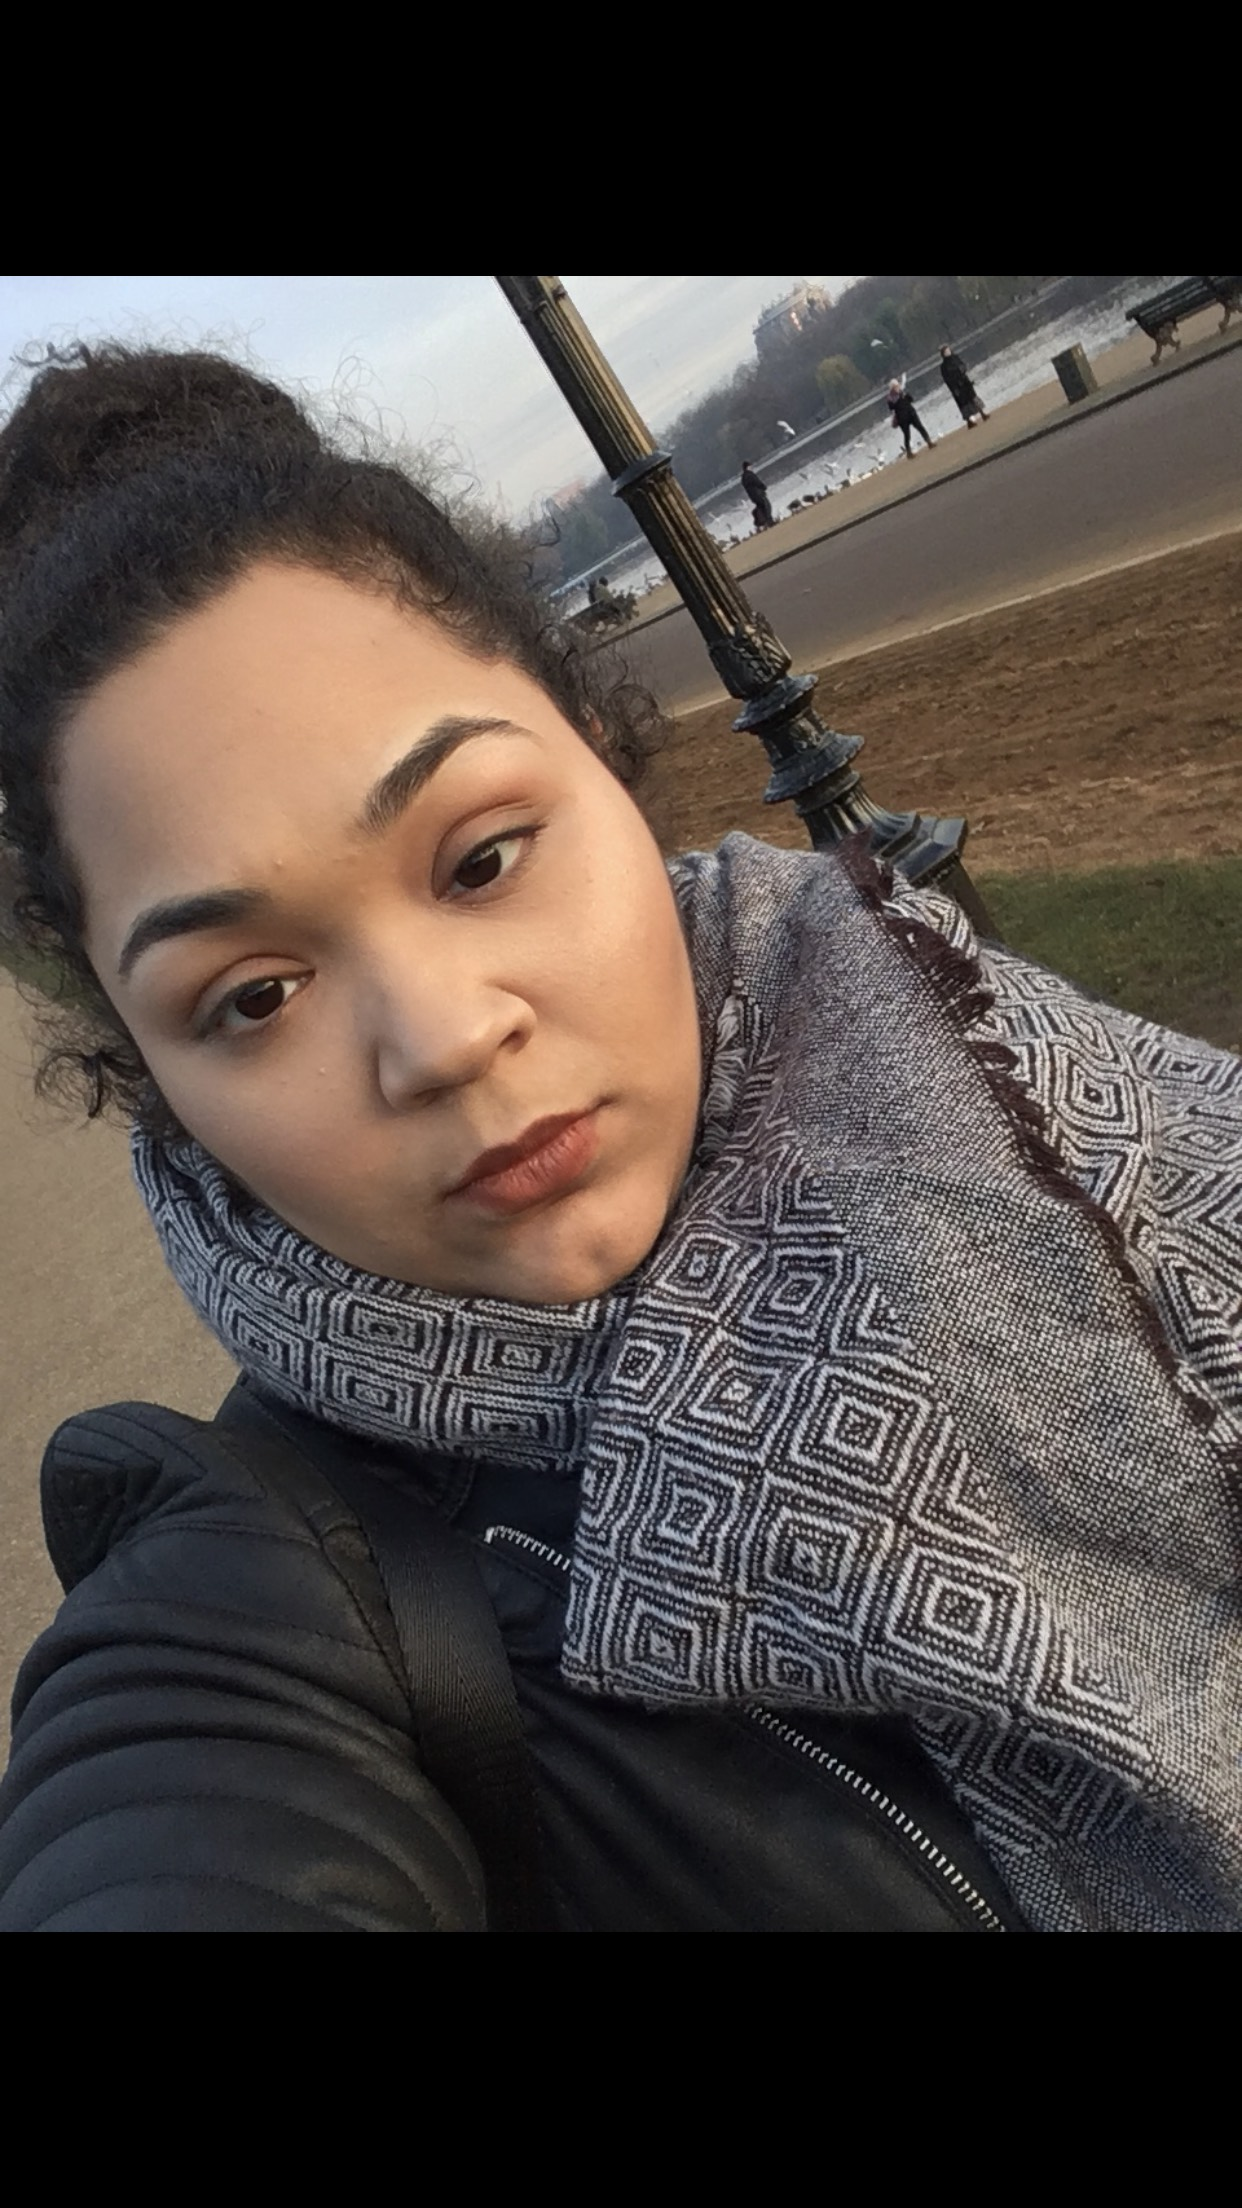 Manuelli Rodriquez - is currently living perfectly situated between New York and Philadelphia, and is currently working with families who are considered low income in accessing preschool. In her free time, she is lifting (relatively heavy) and listening to music and doing her 10-step skincare routine.